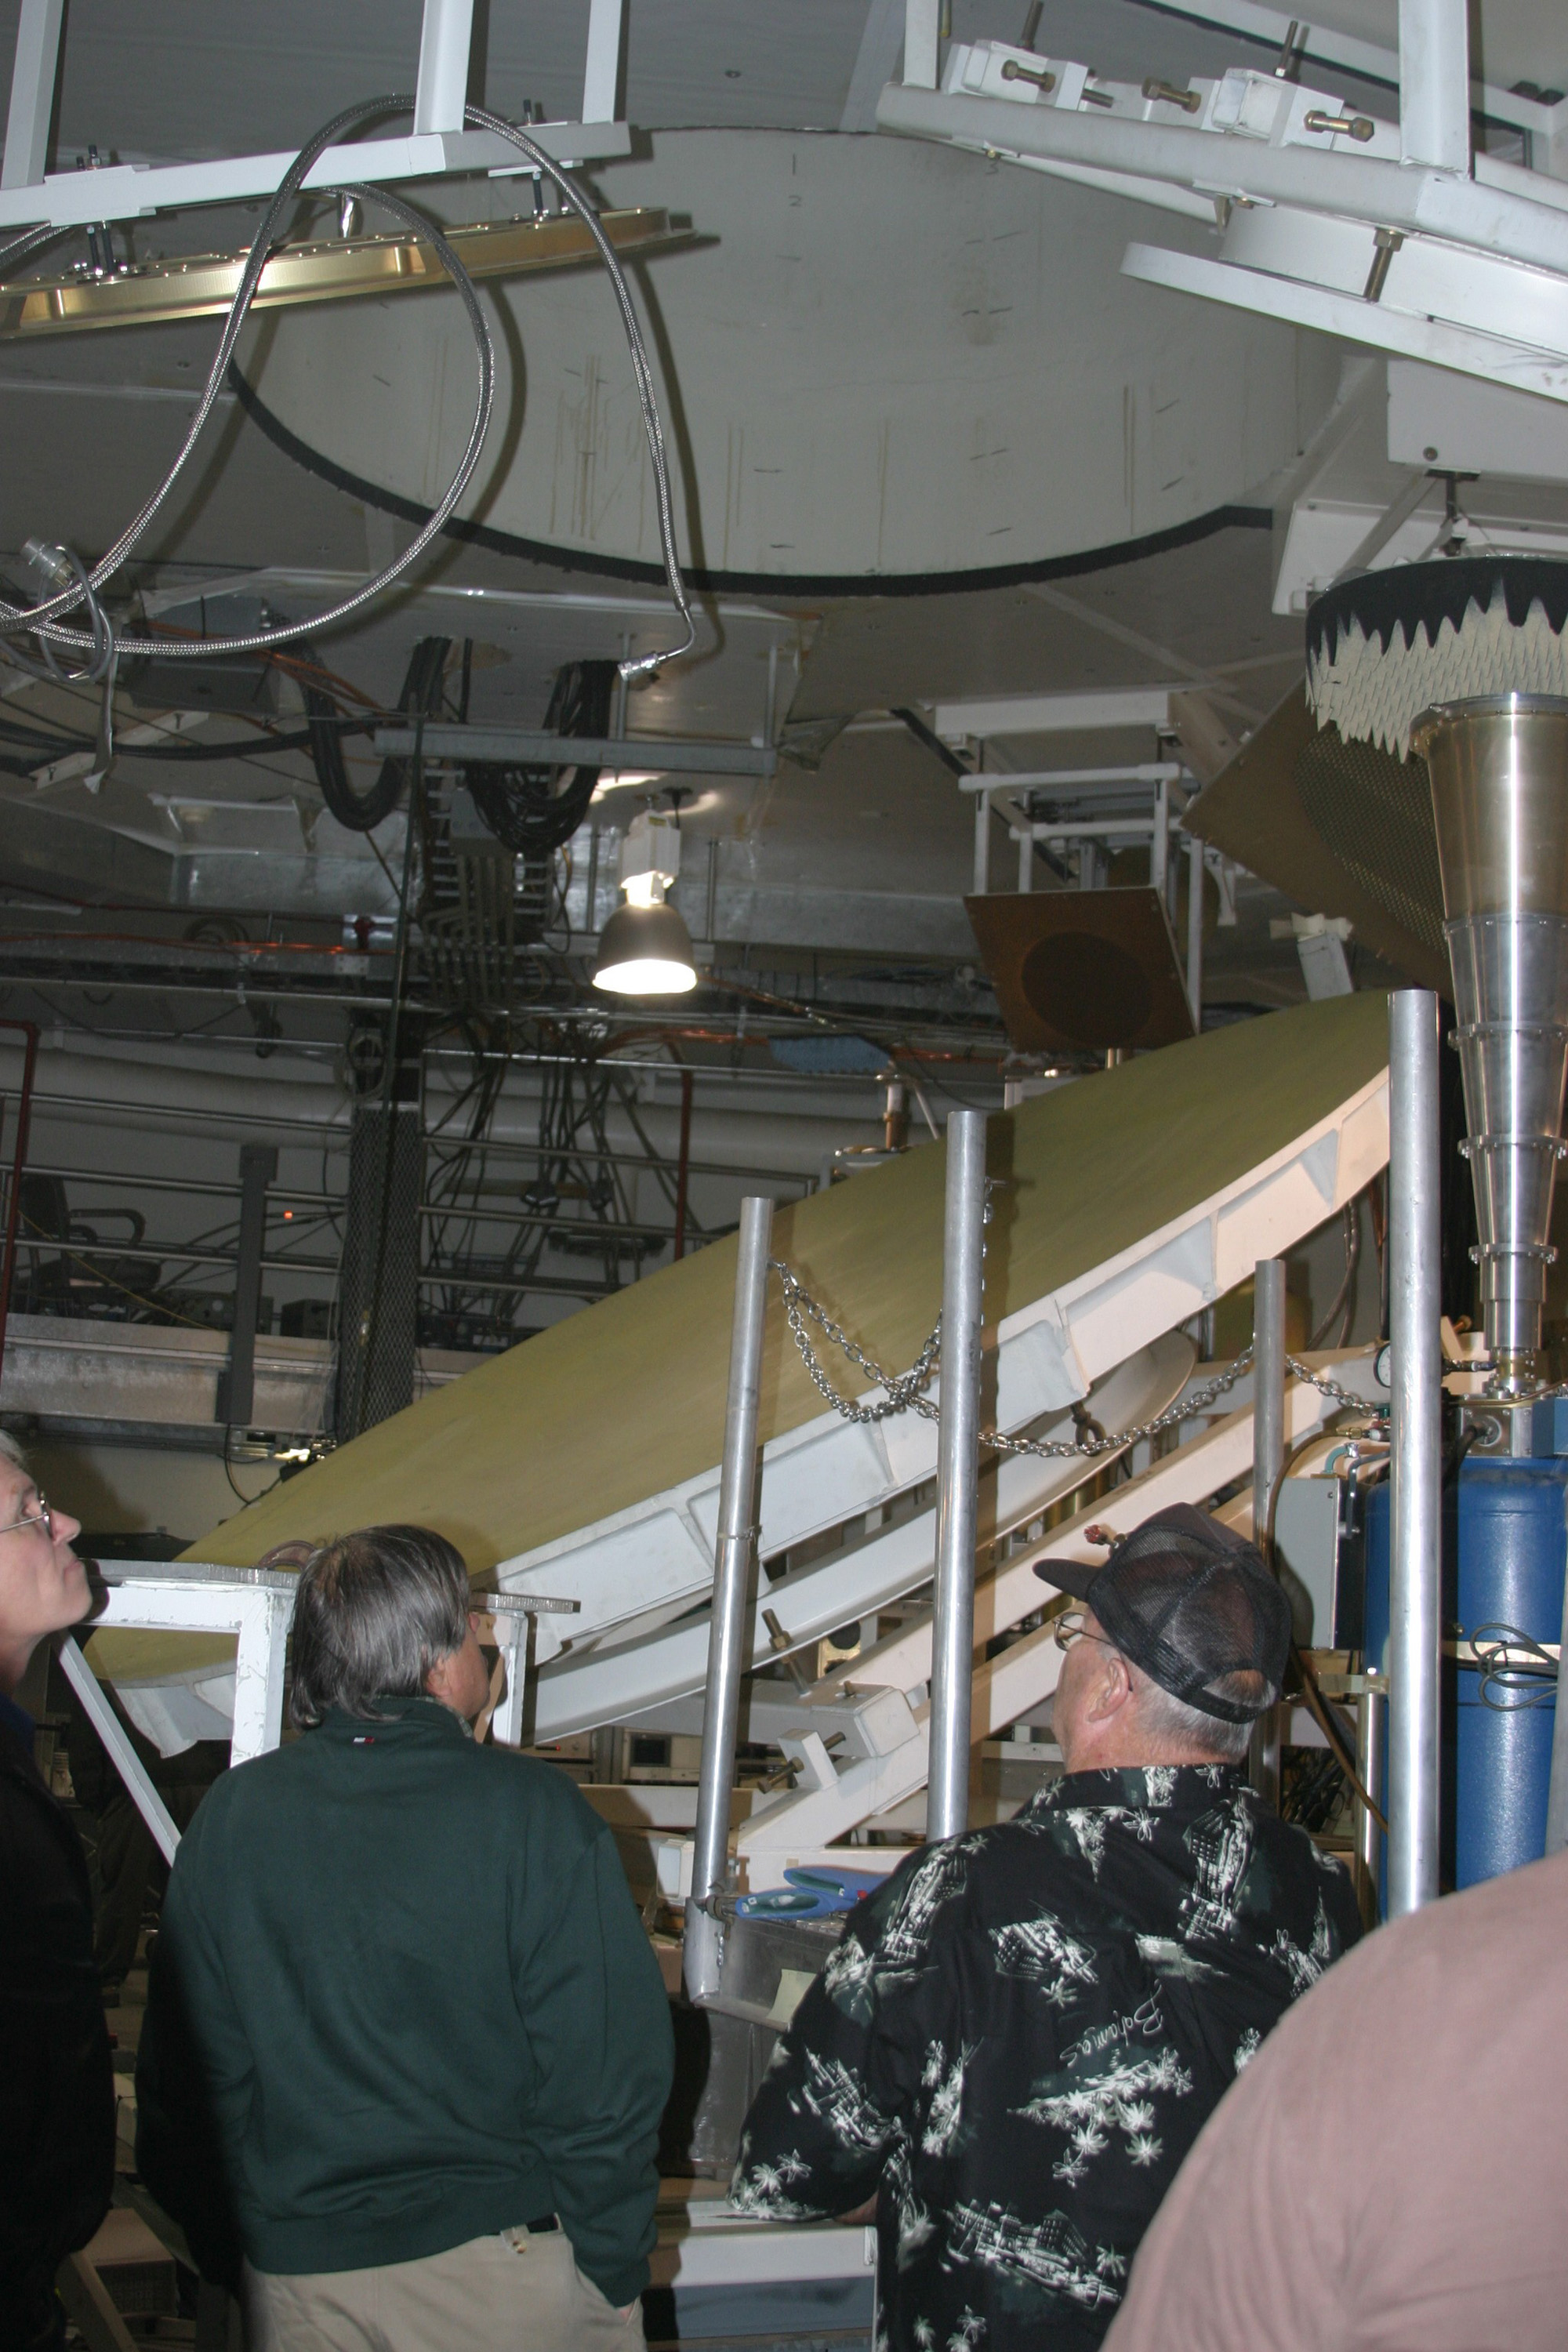 the radio wave reflector located in the basement of the beam